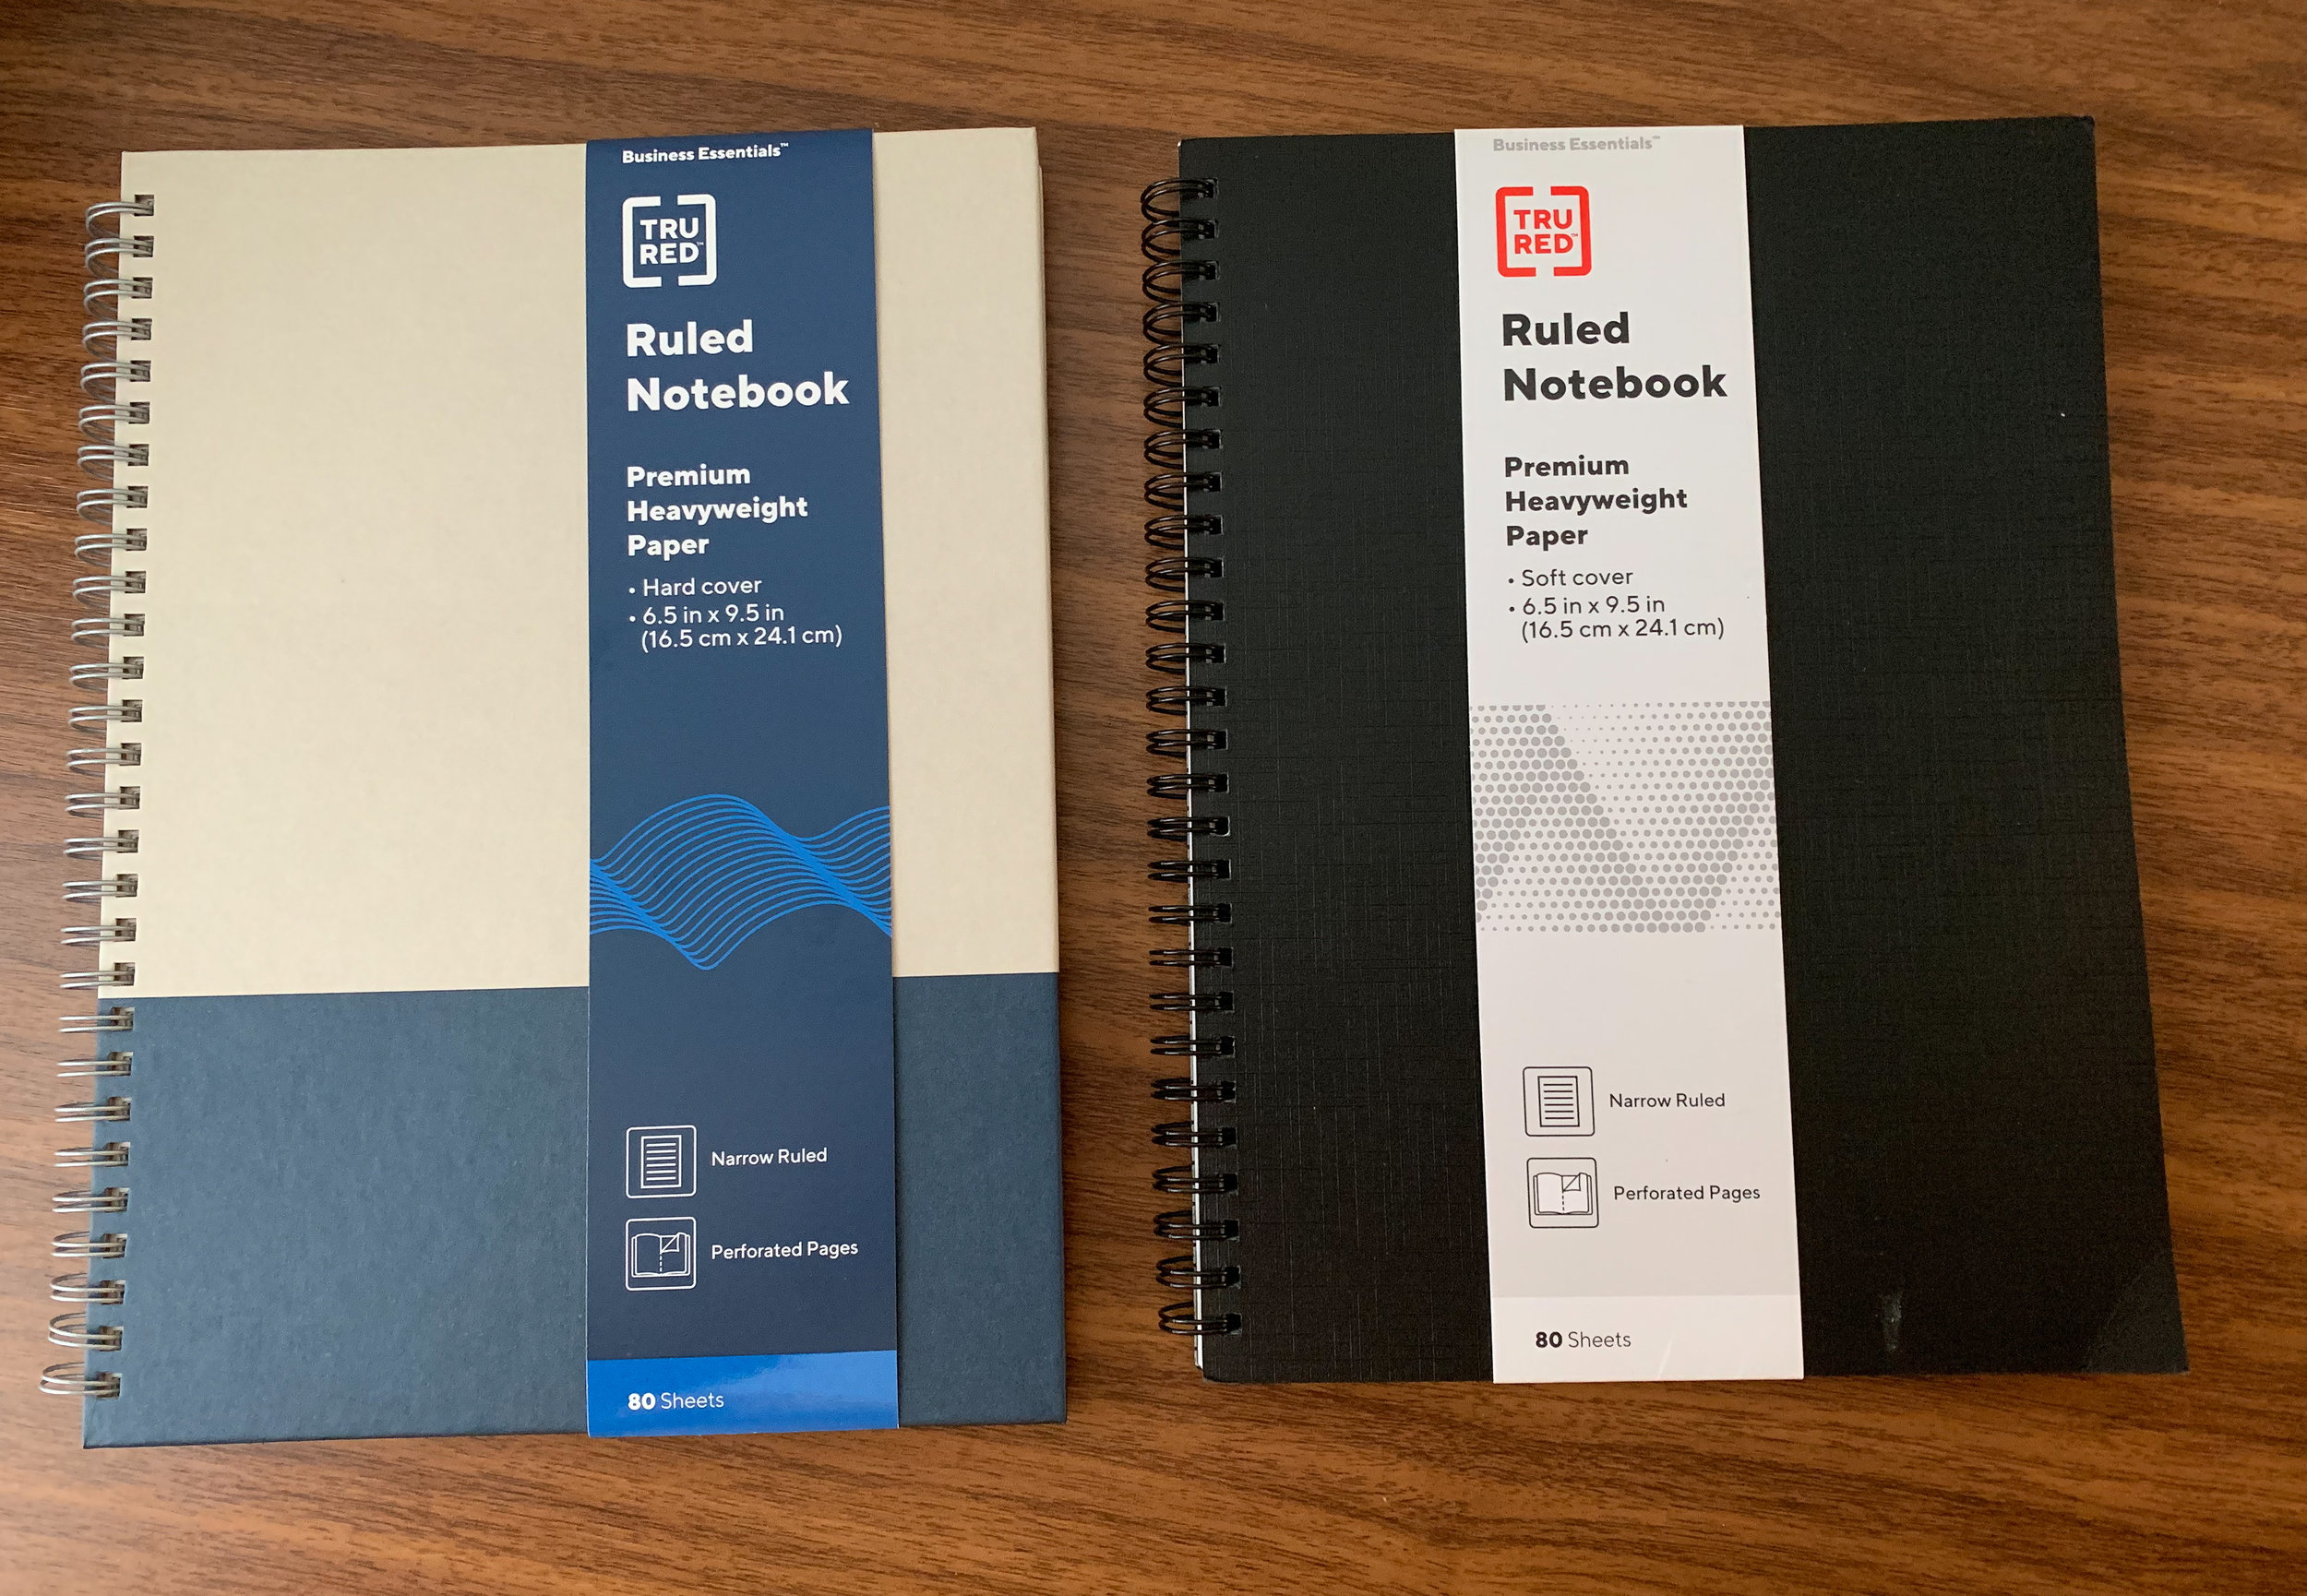 Staples-Tru-Red-Notebooks